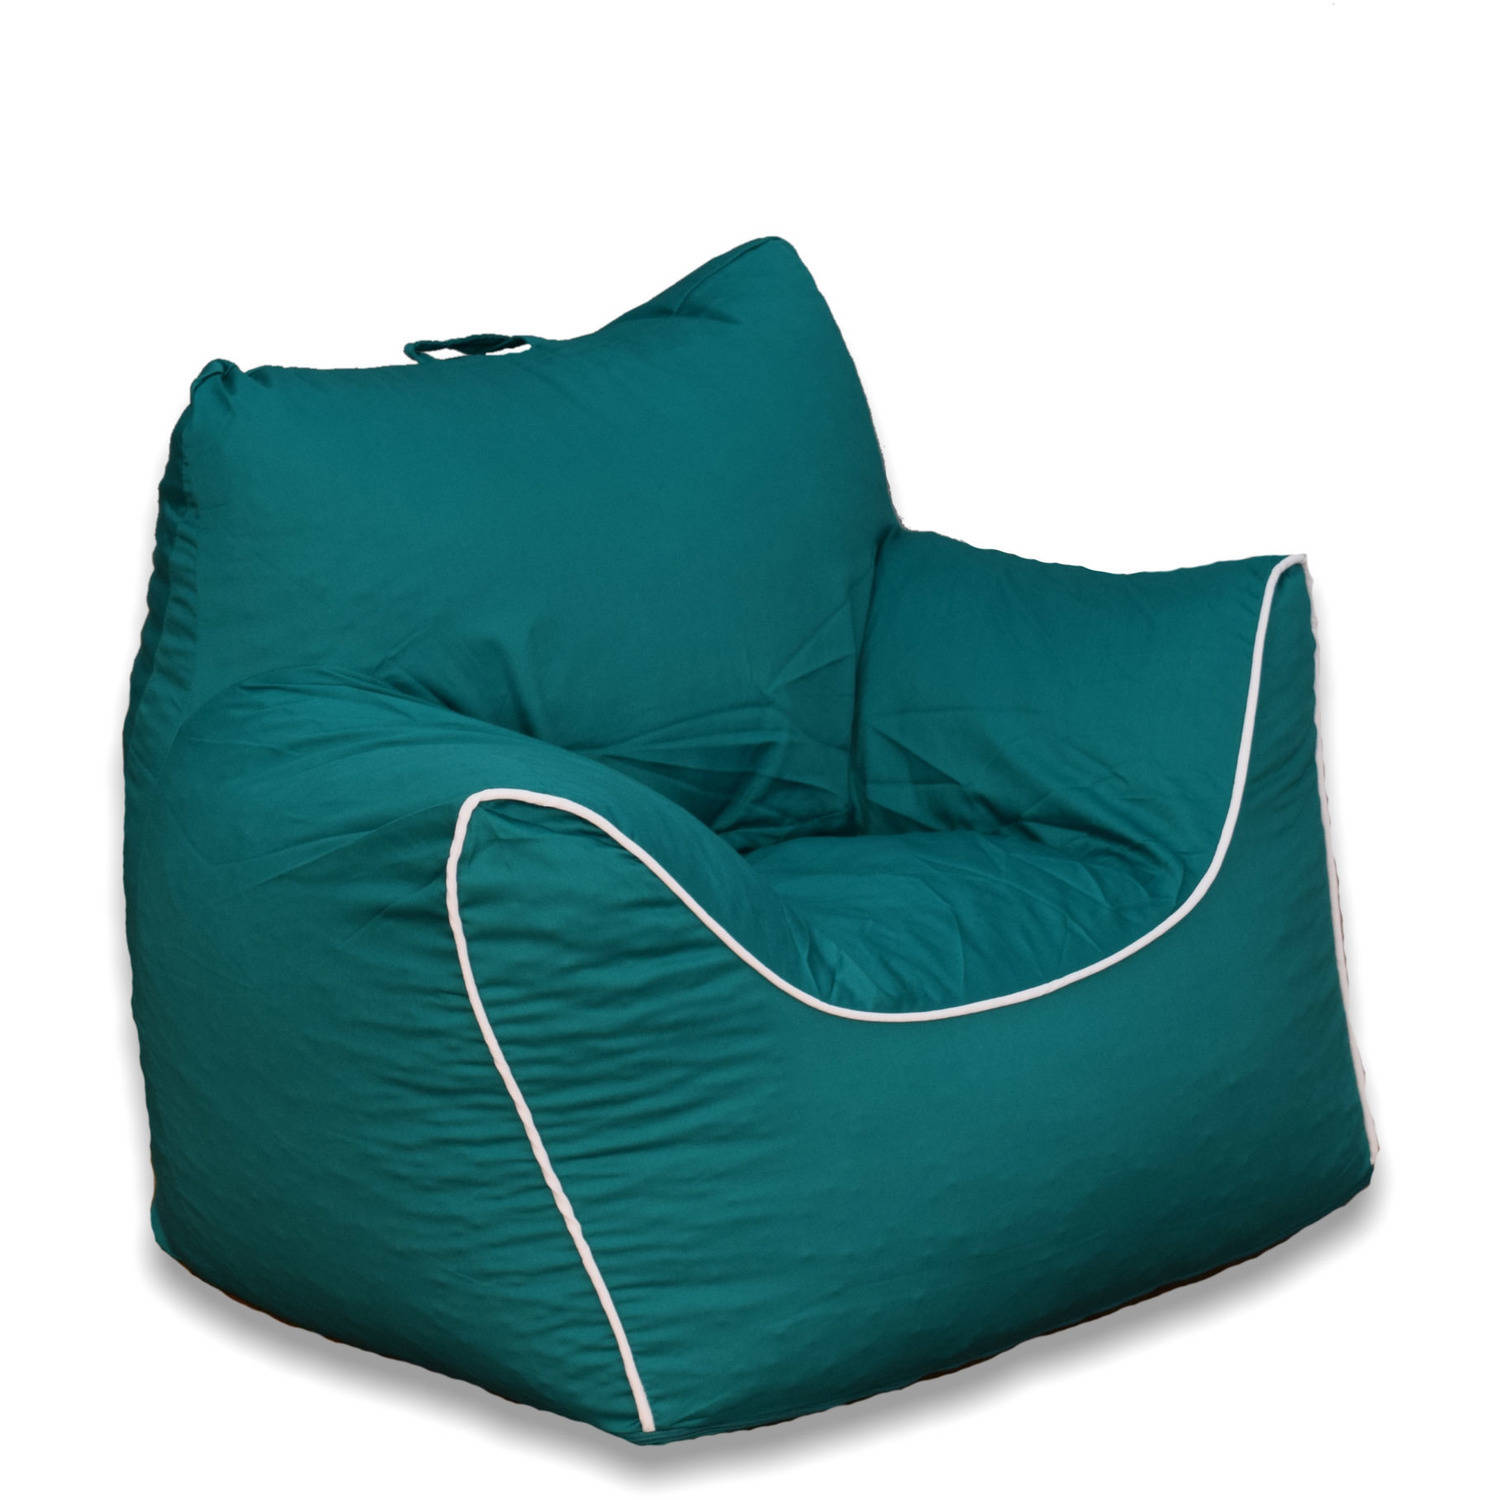 Easy Chair with Removable Cover, Multiple Colors Available